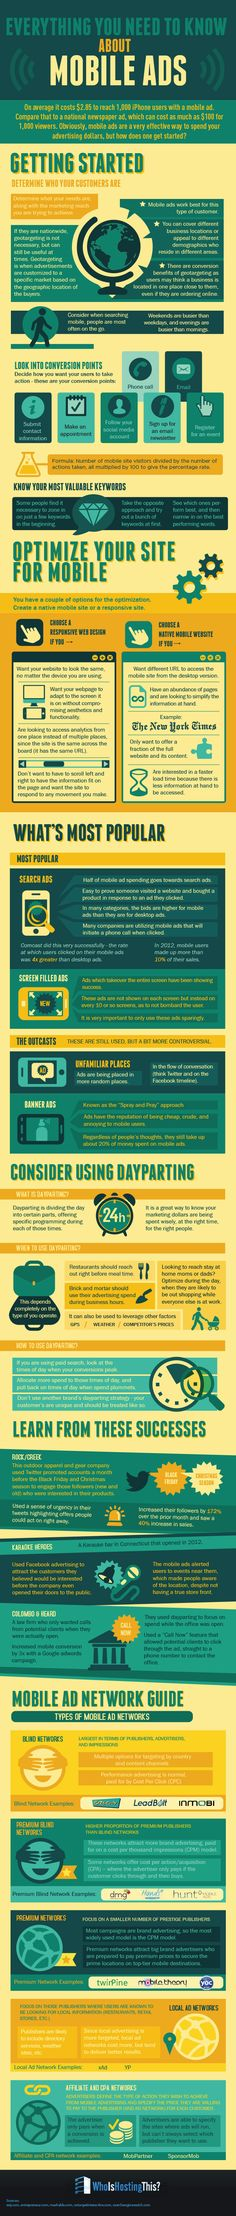 INFOGRAPHIC: Everything you need to know about mobile ads | Mobile Industry | Mobile Entertainment